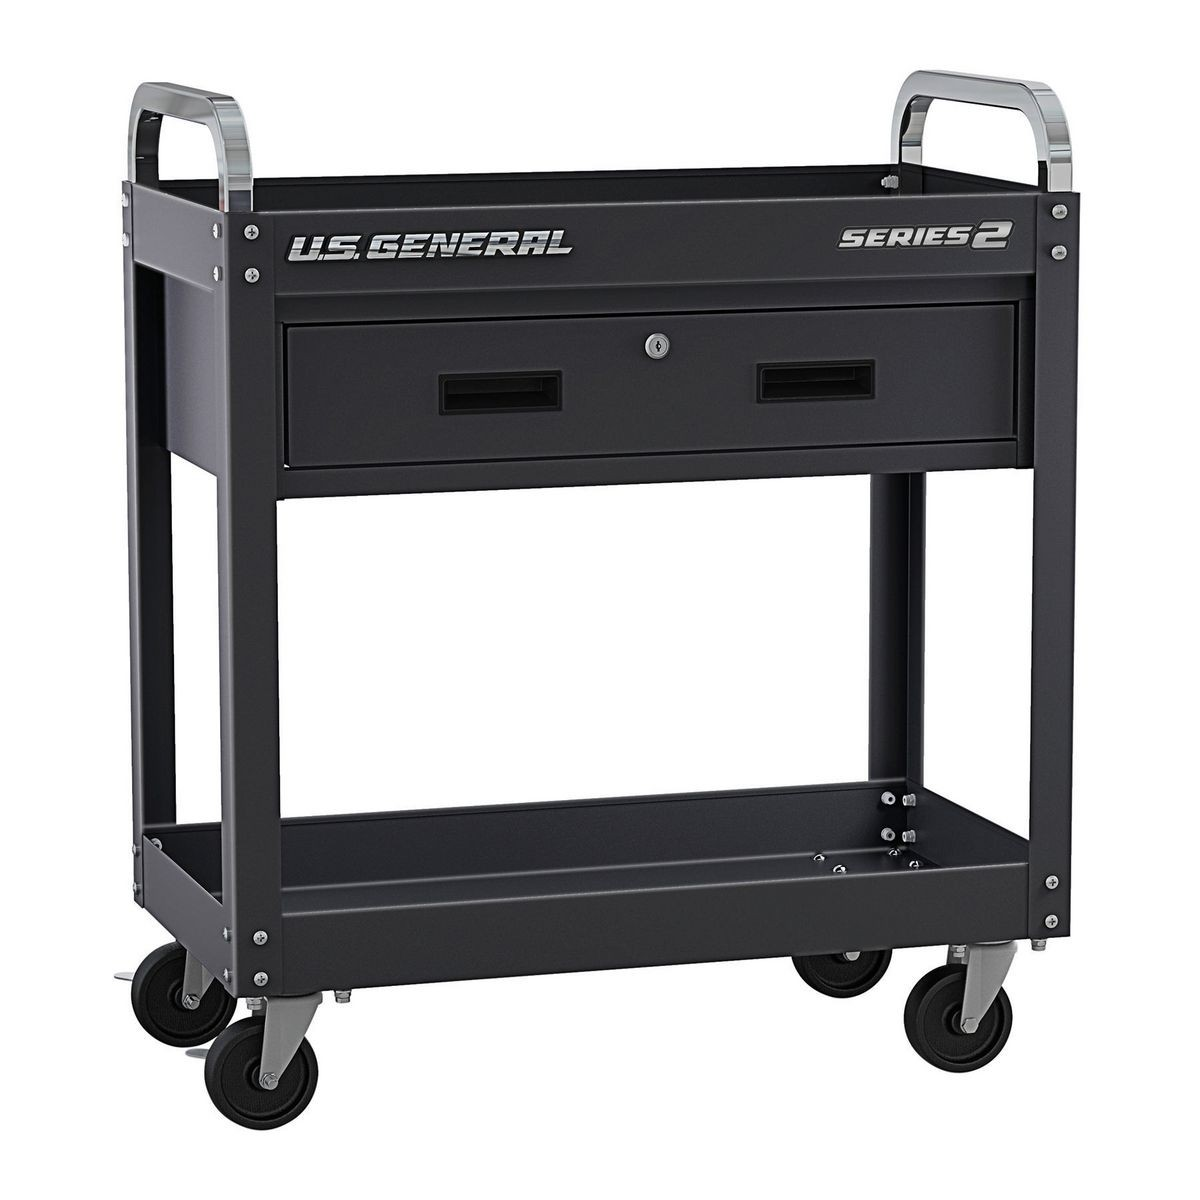 U.S. GENERAL 30 In. Service Cart With Drawer – Black – Item 56604